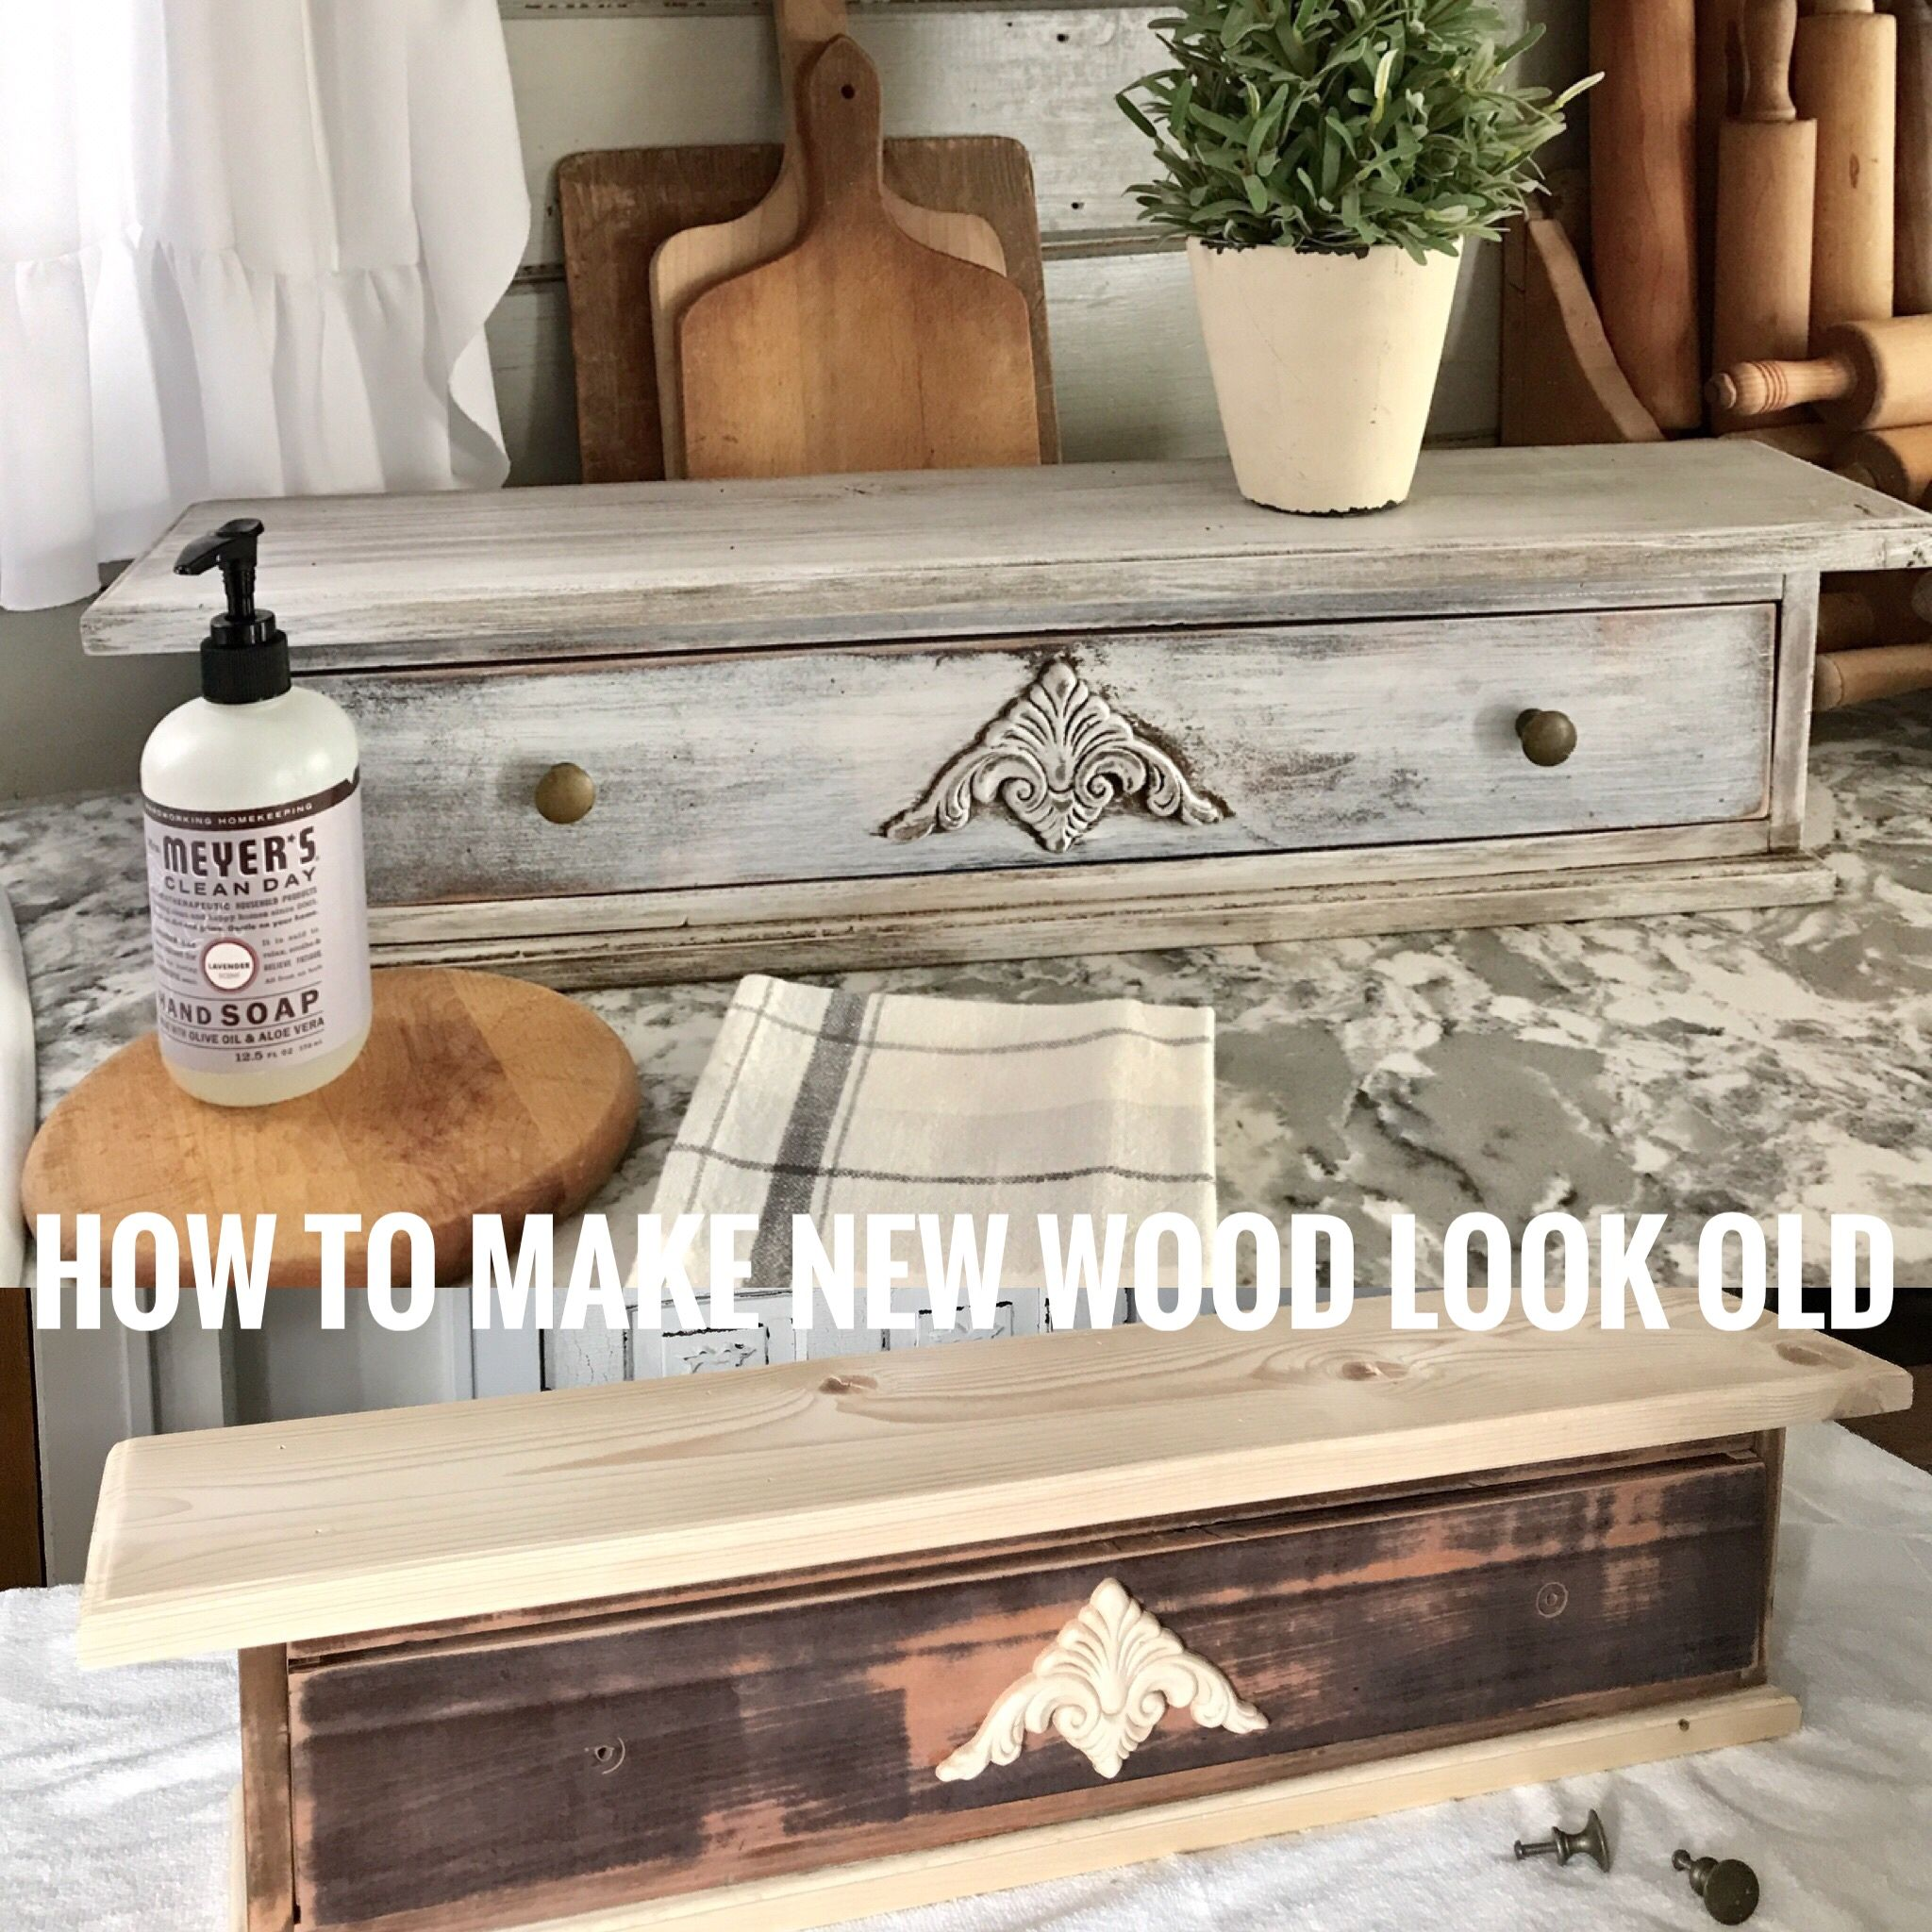 How to make new wood look old using paint and stain the house on